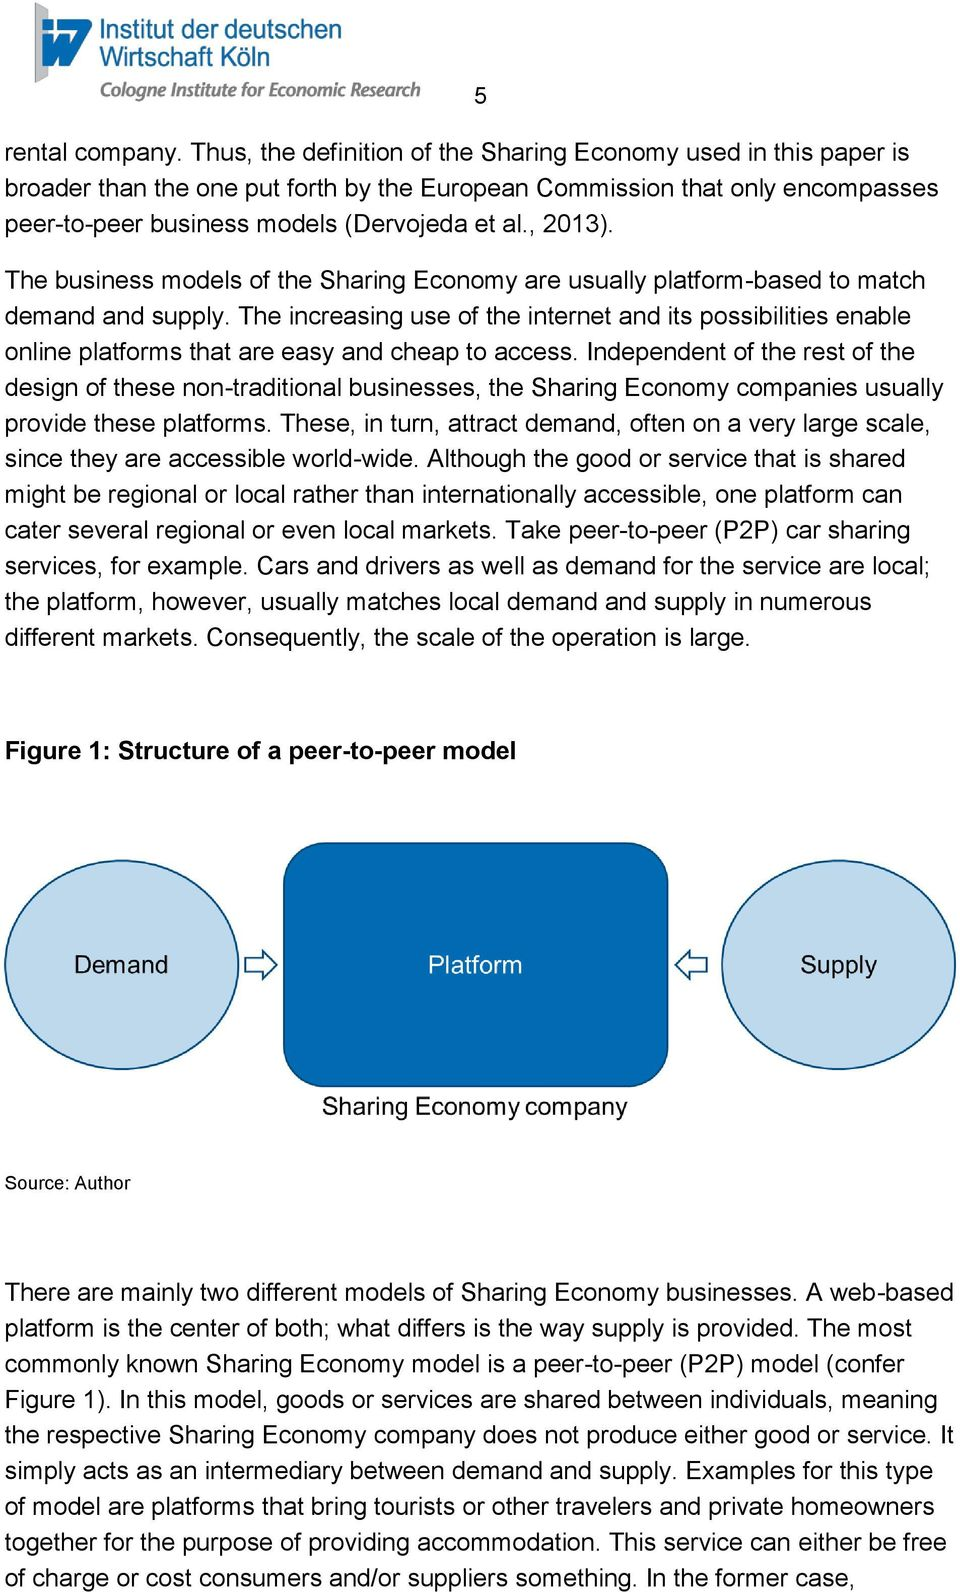 The business models of the Sharing Economy are usually platform-based to match demand and supply.